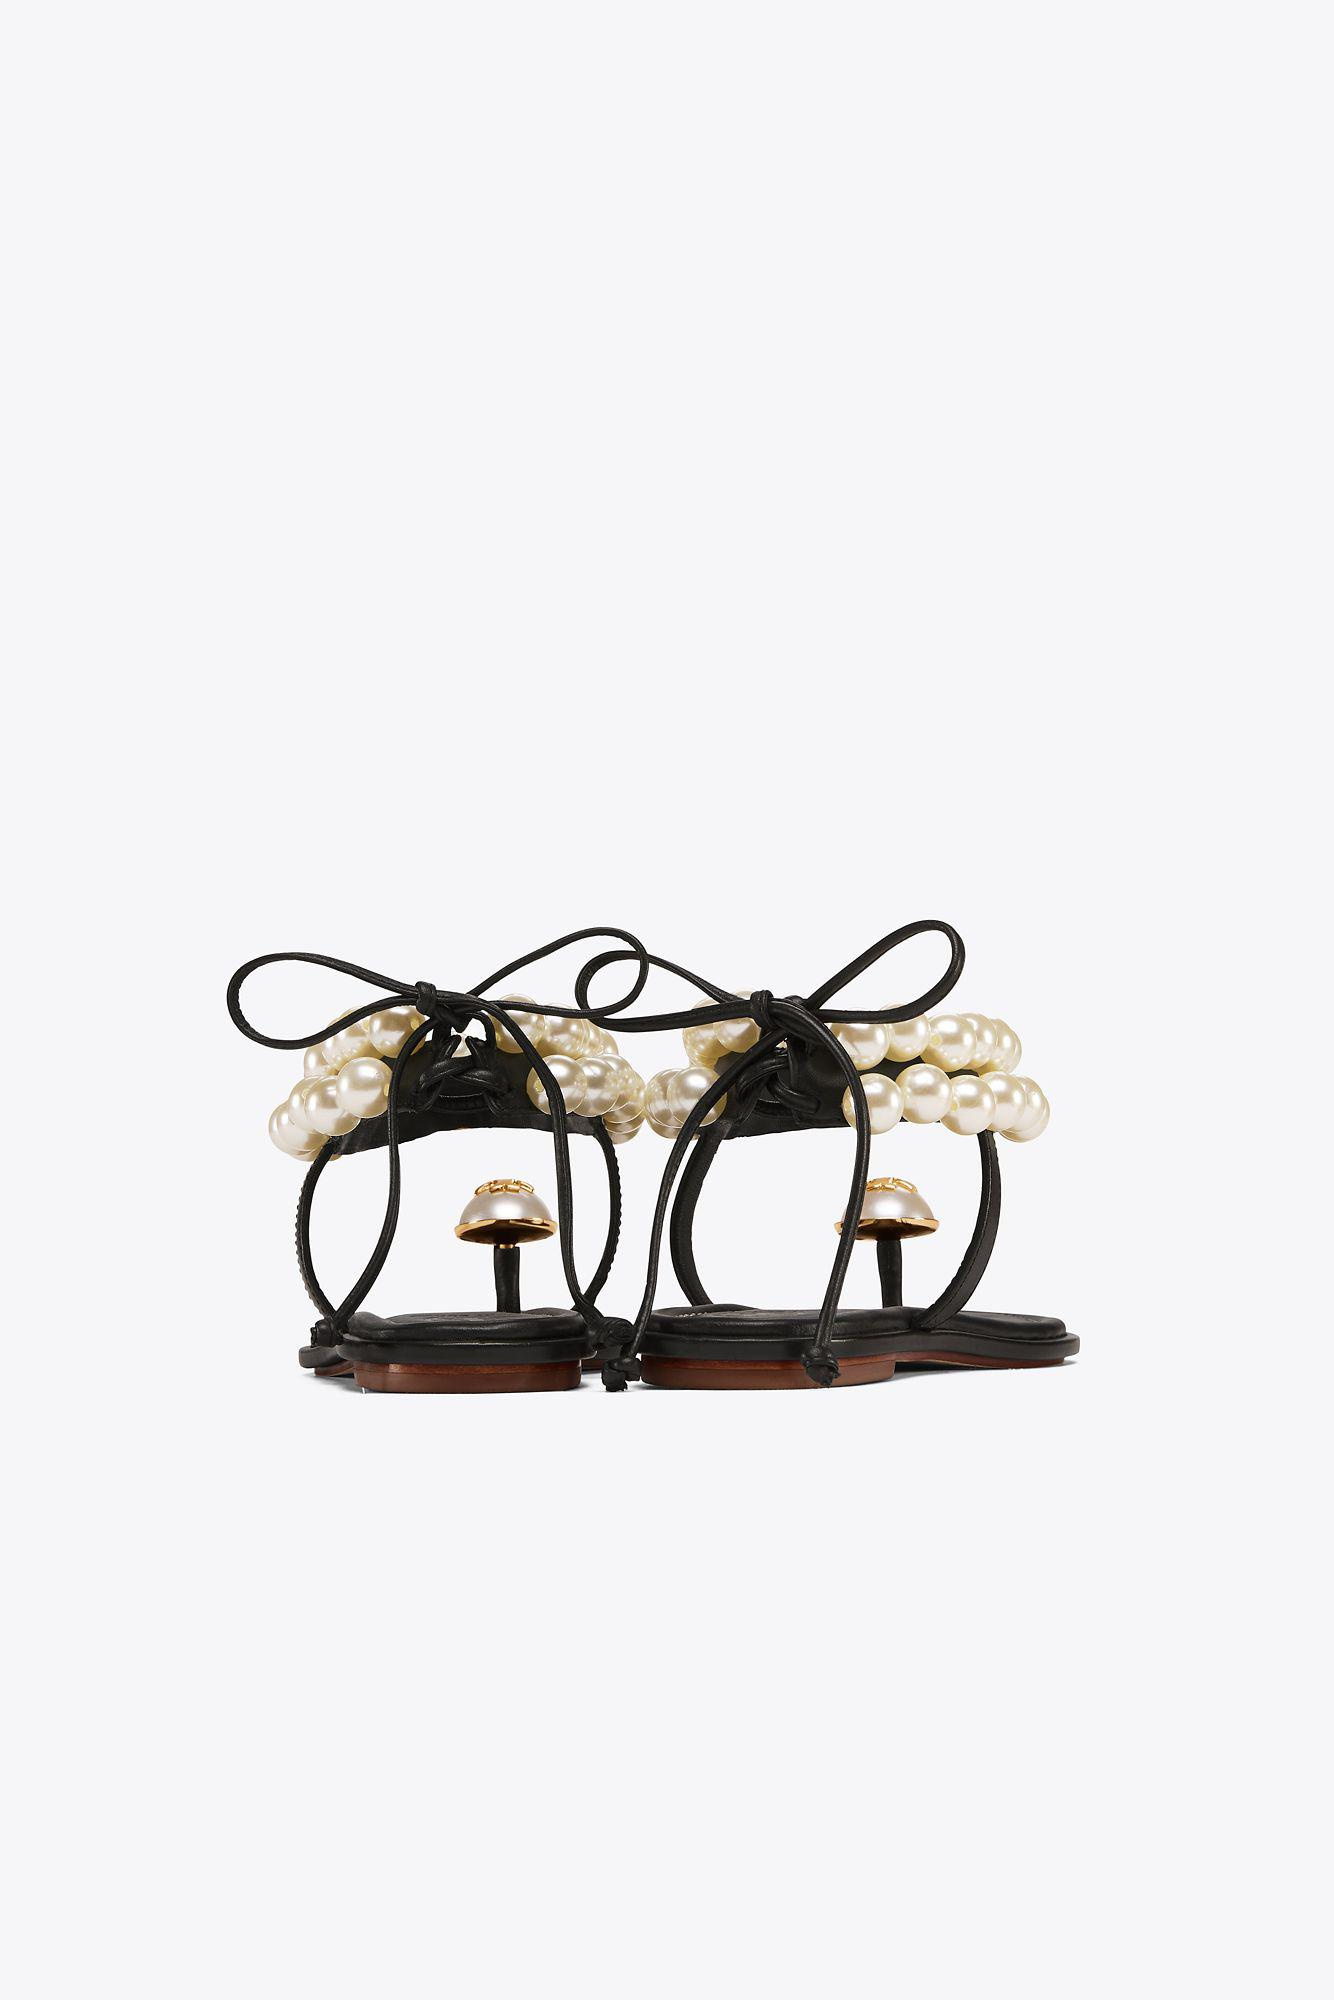 ac1c18904386 Tory Burch Melody Ankle Strap Sandal in Black - Lyst